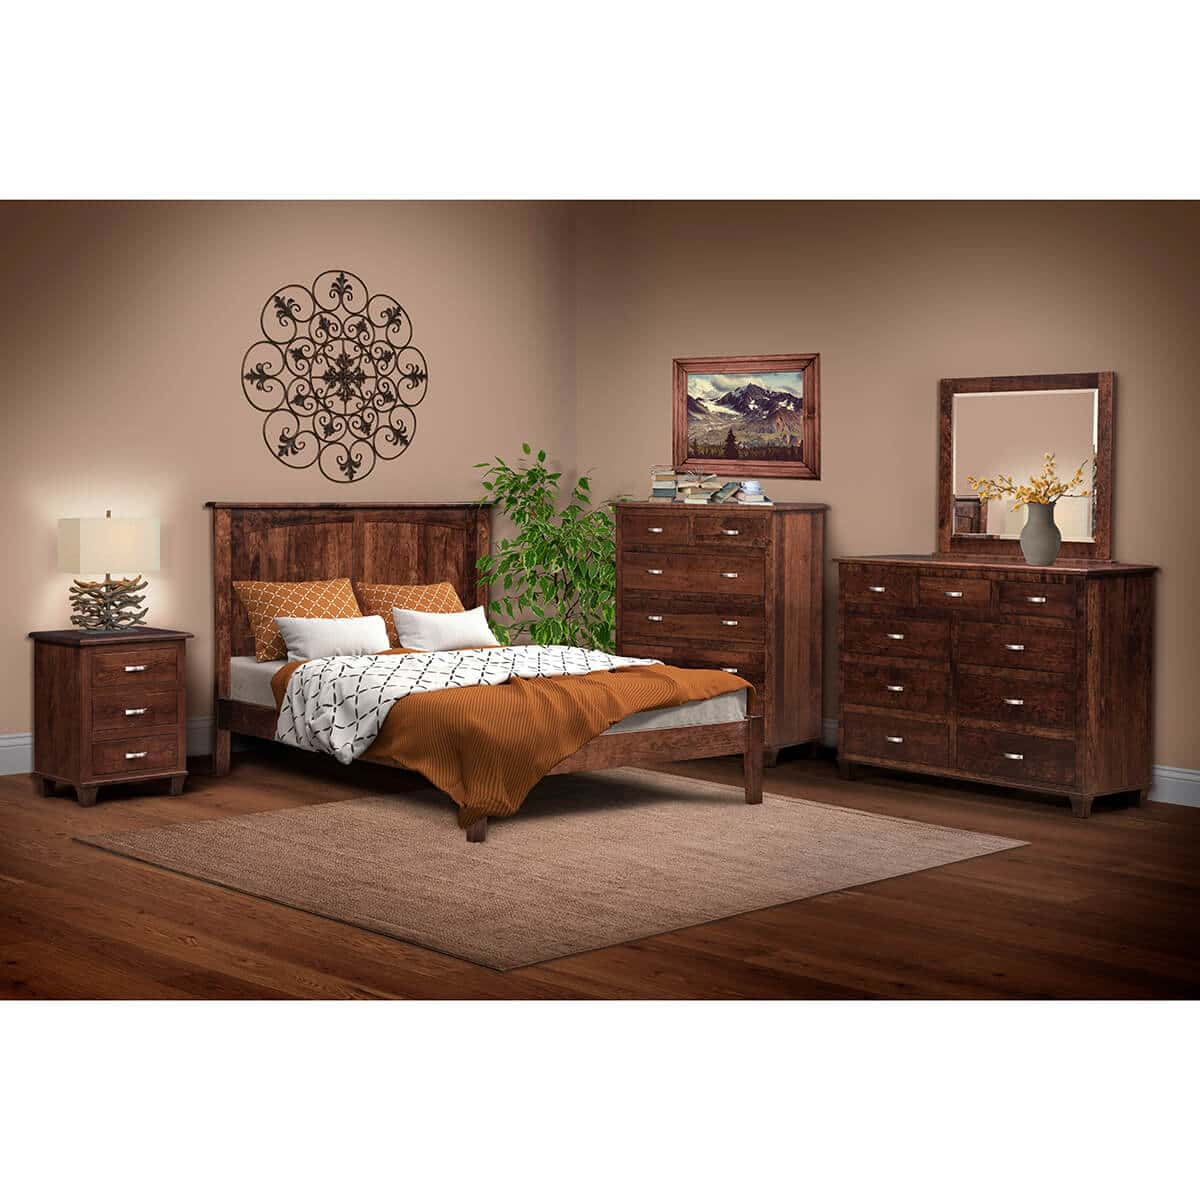 saybrookbedroomcollection30219